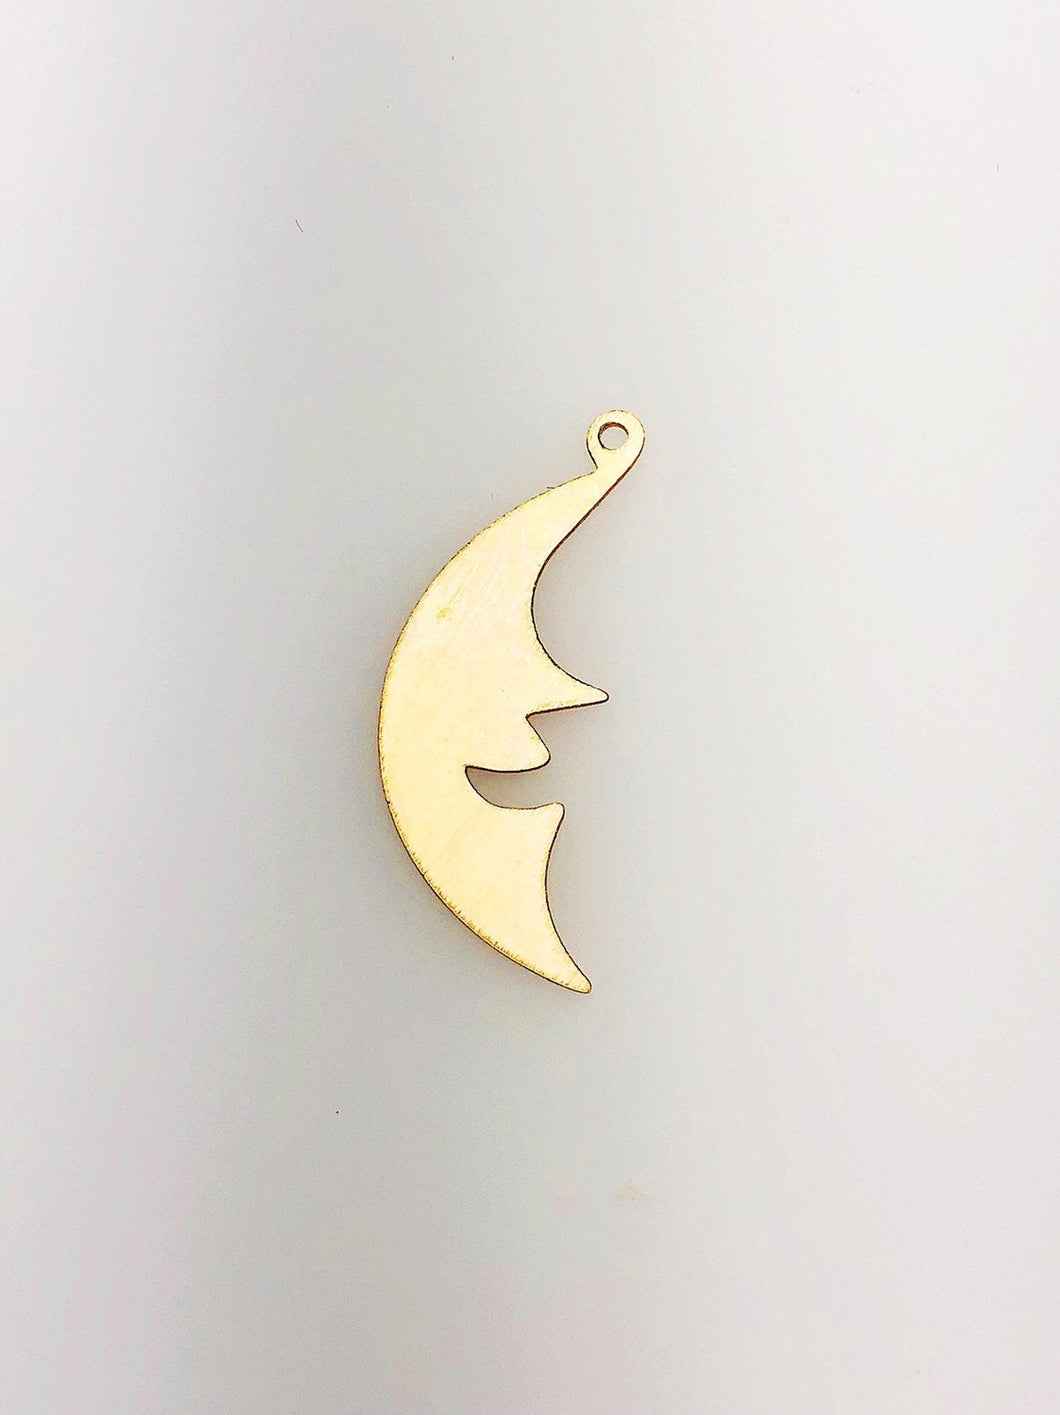 14K Gold Fill Moon Charm w/ Ring, 9.6x25.4mm, Made in USA - 367